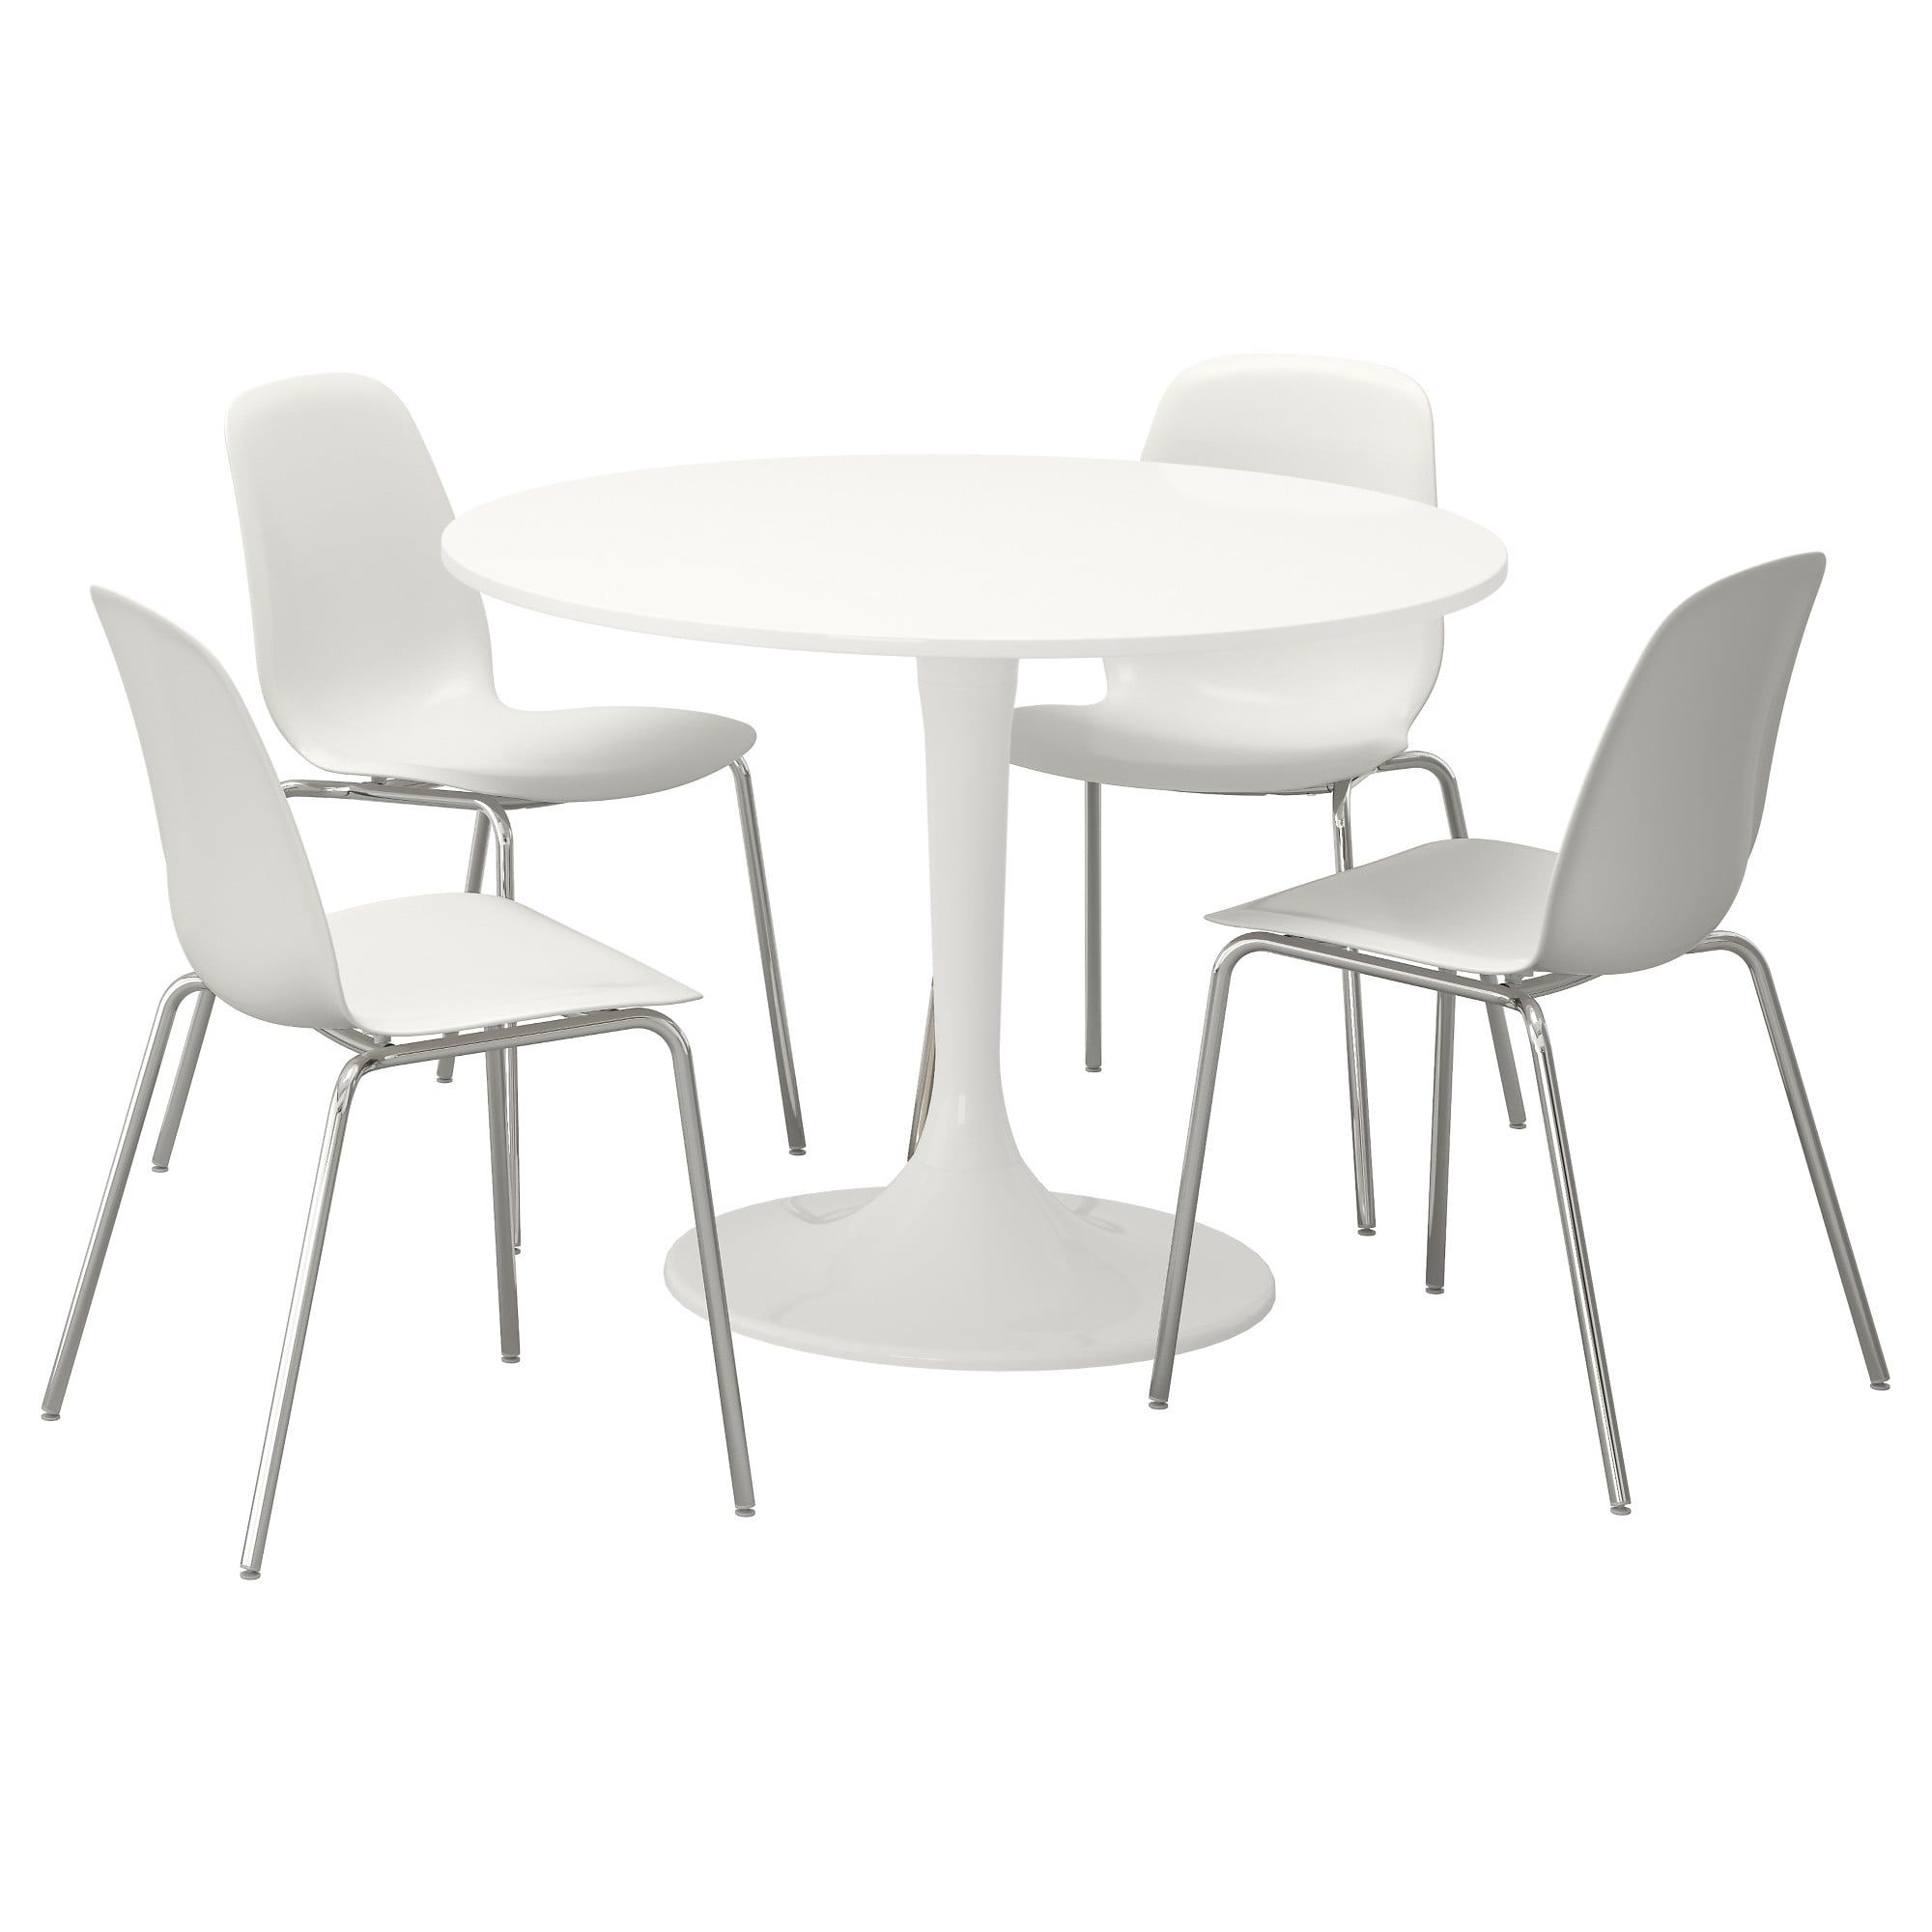 Docksta Leifarne Table And 4 Chairs White White